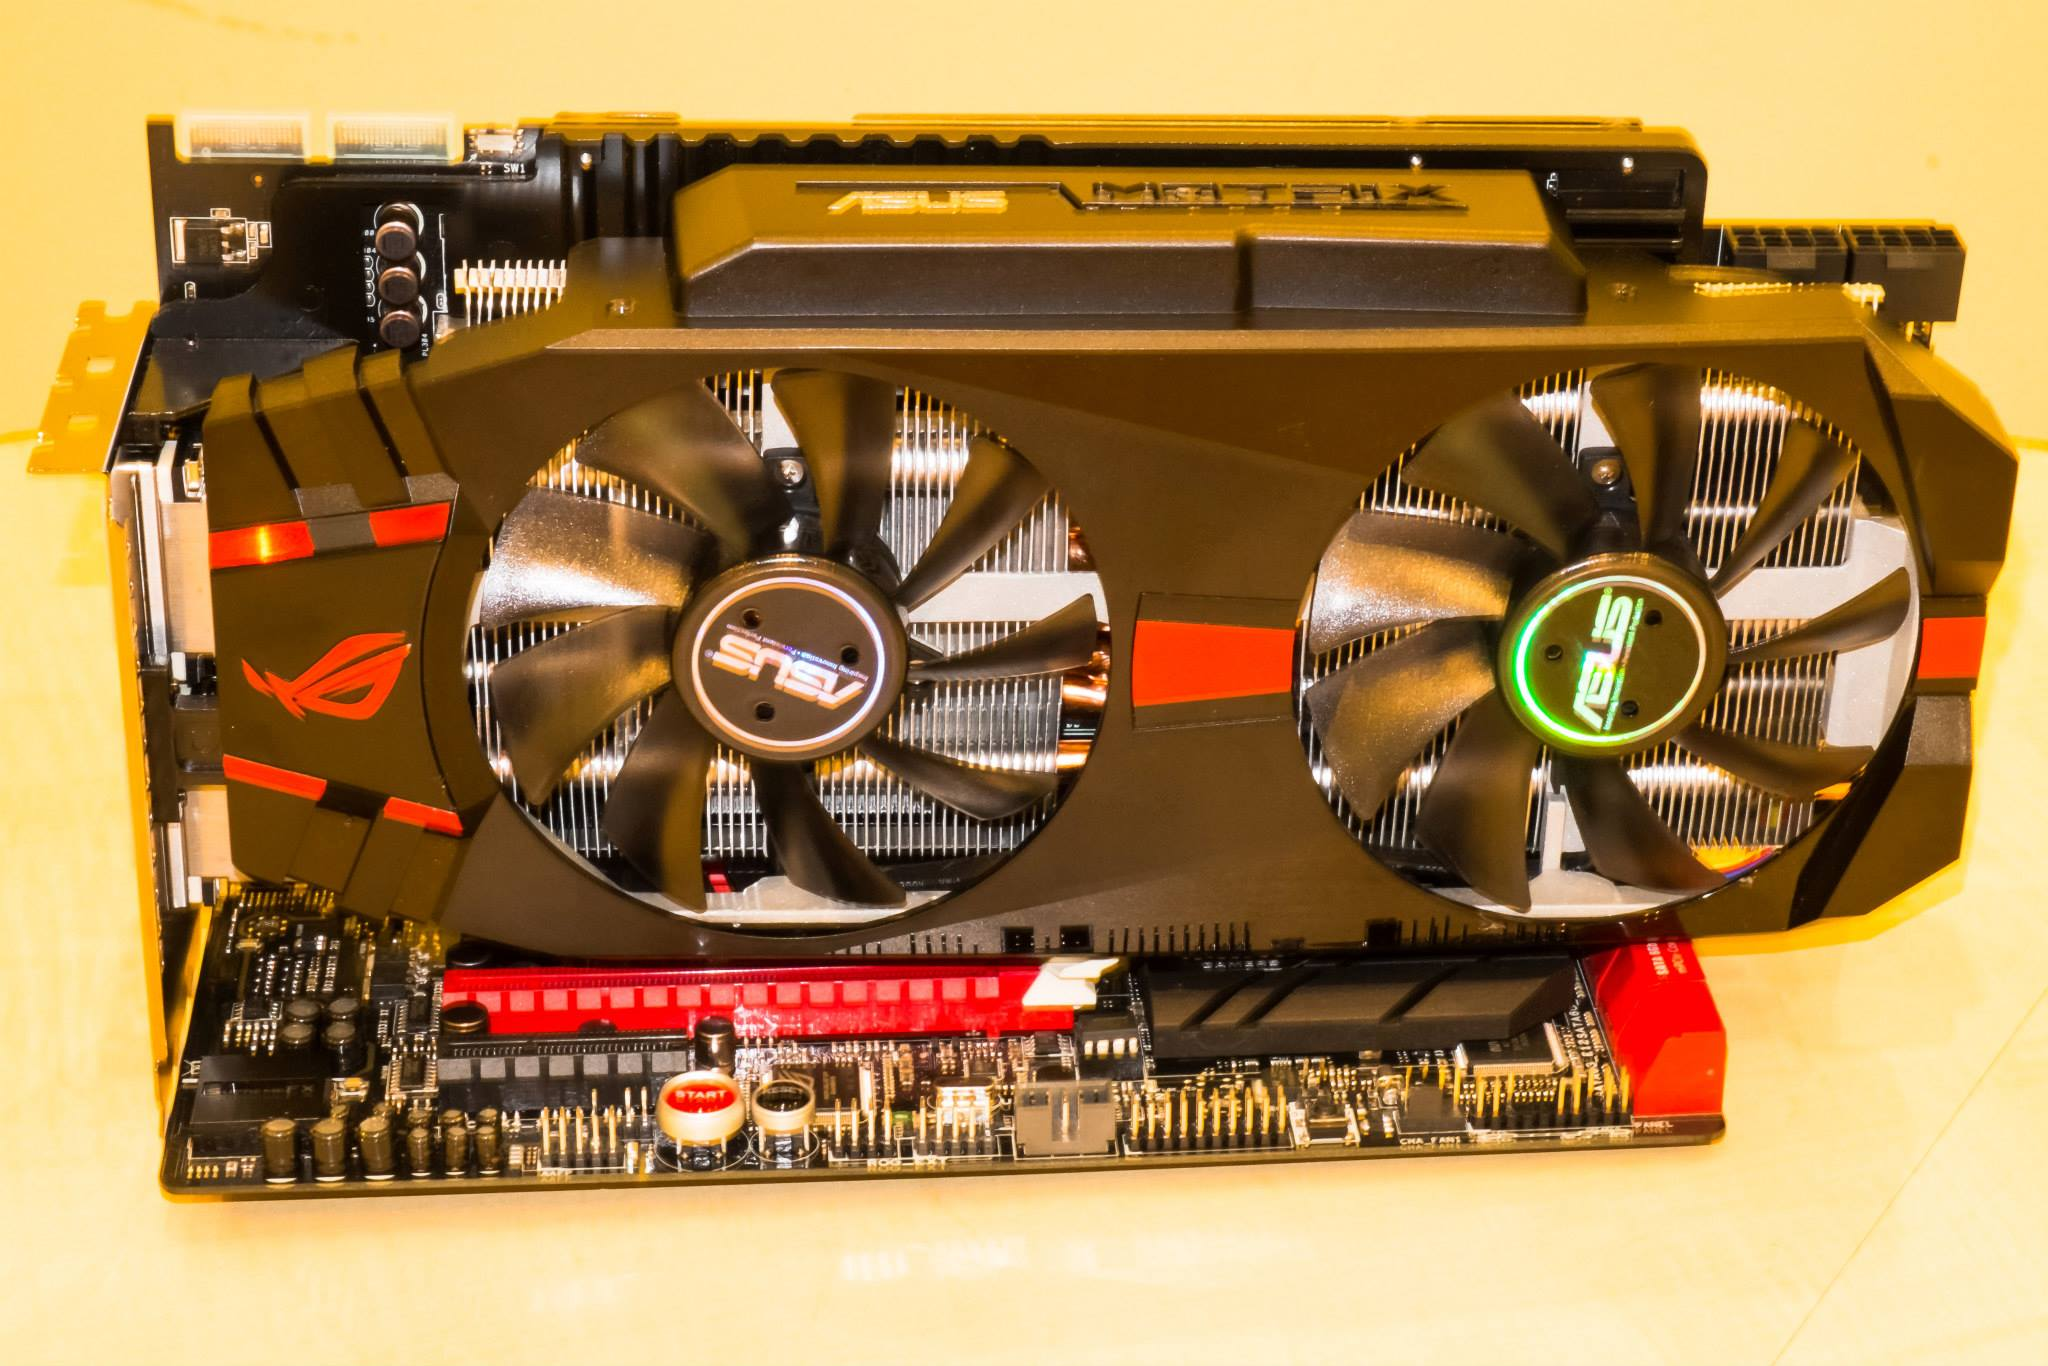 ASUS ROG Matrix R9 280X Platinum Pictured